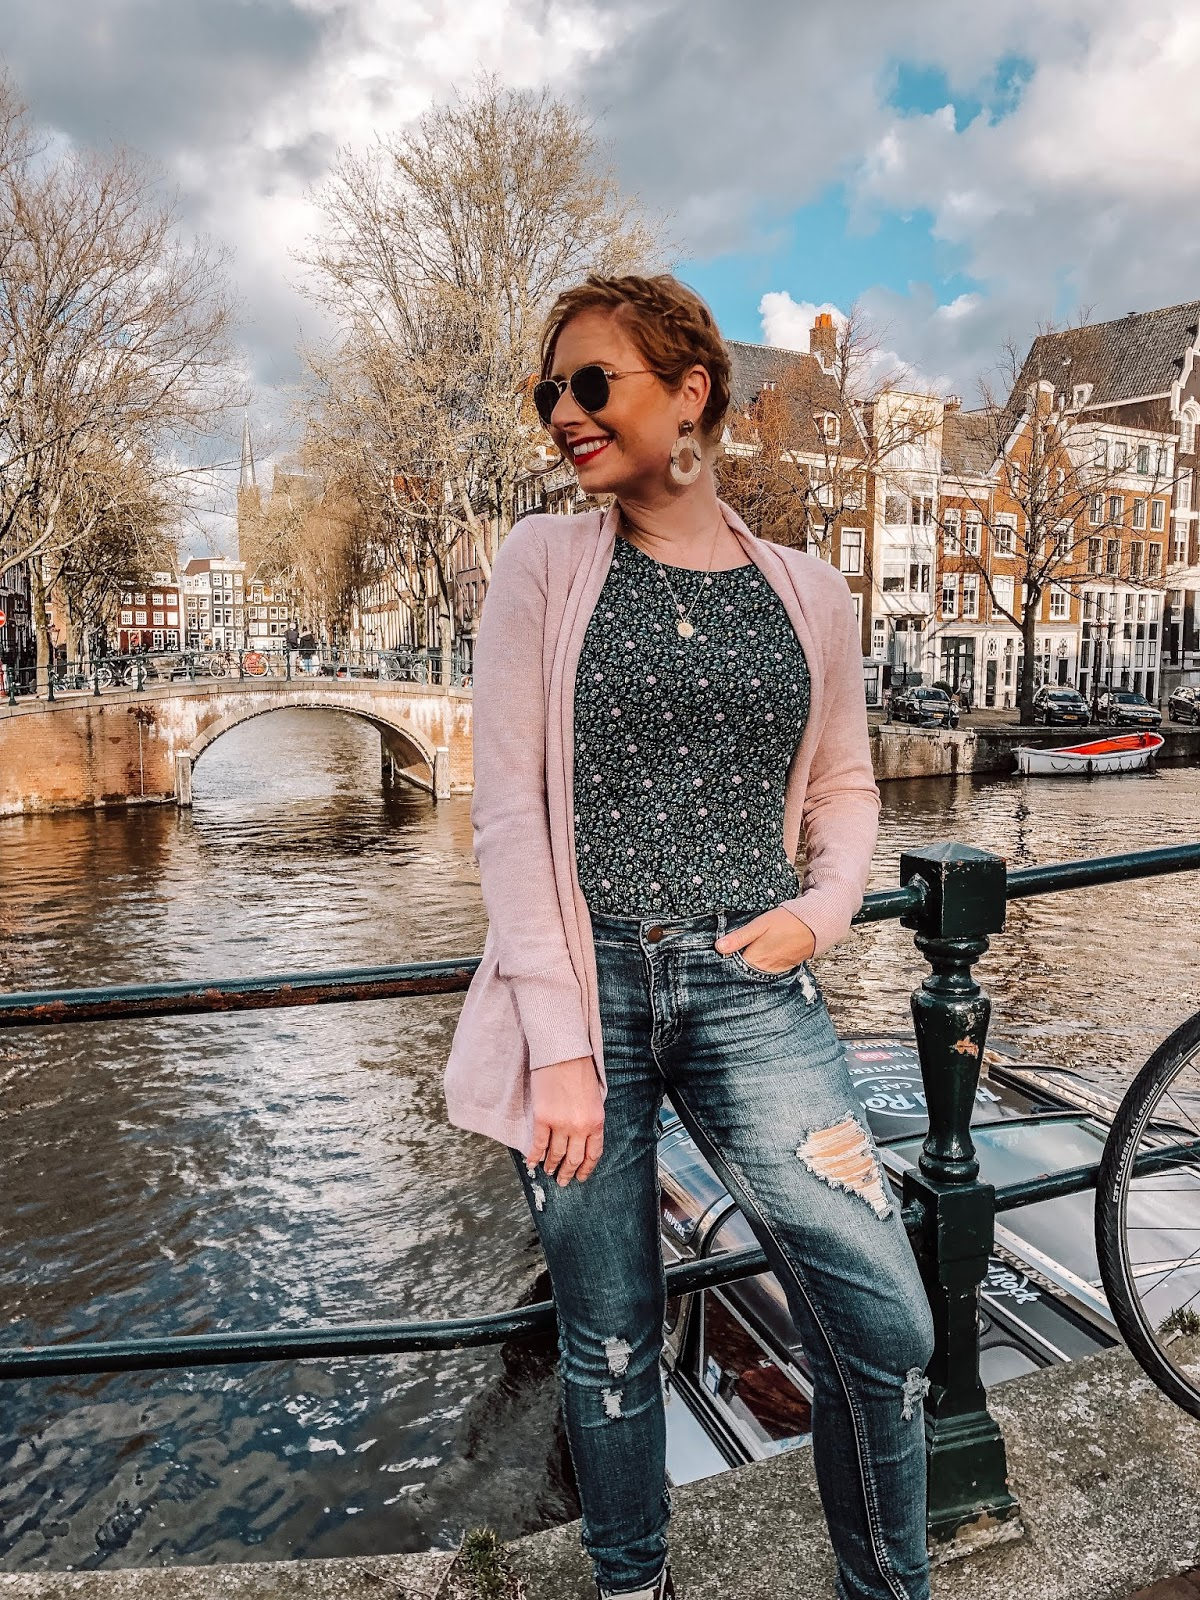 affordable by amanda travel guide to amsterdam, the netherlands. she is wearing a purple cardigan from loft and a loft ditsy top from loft with a pair of distressed denim jeans.